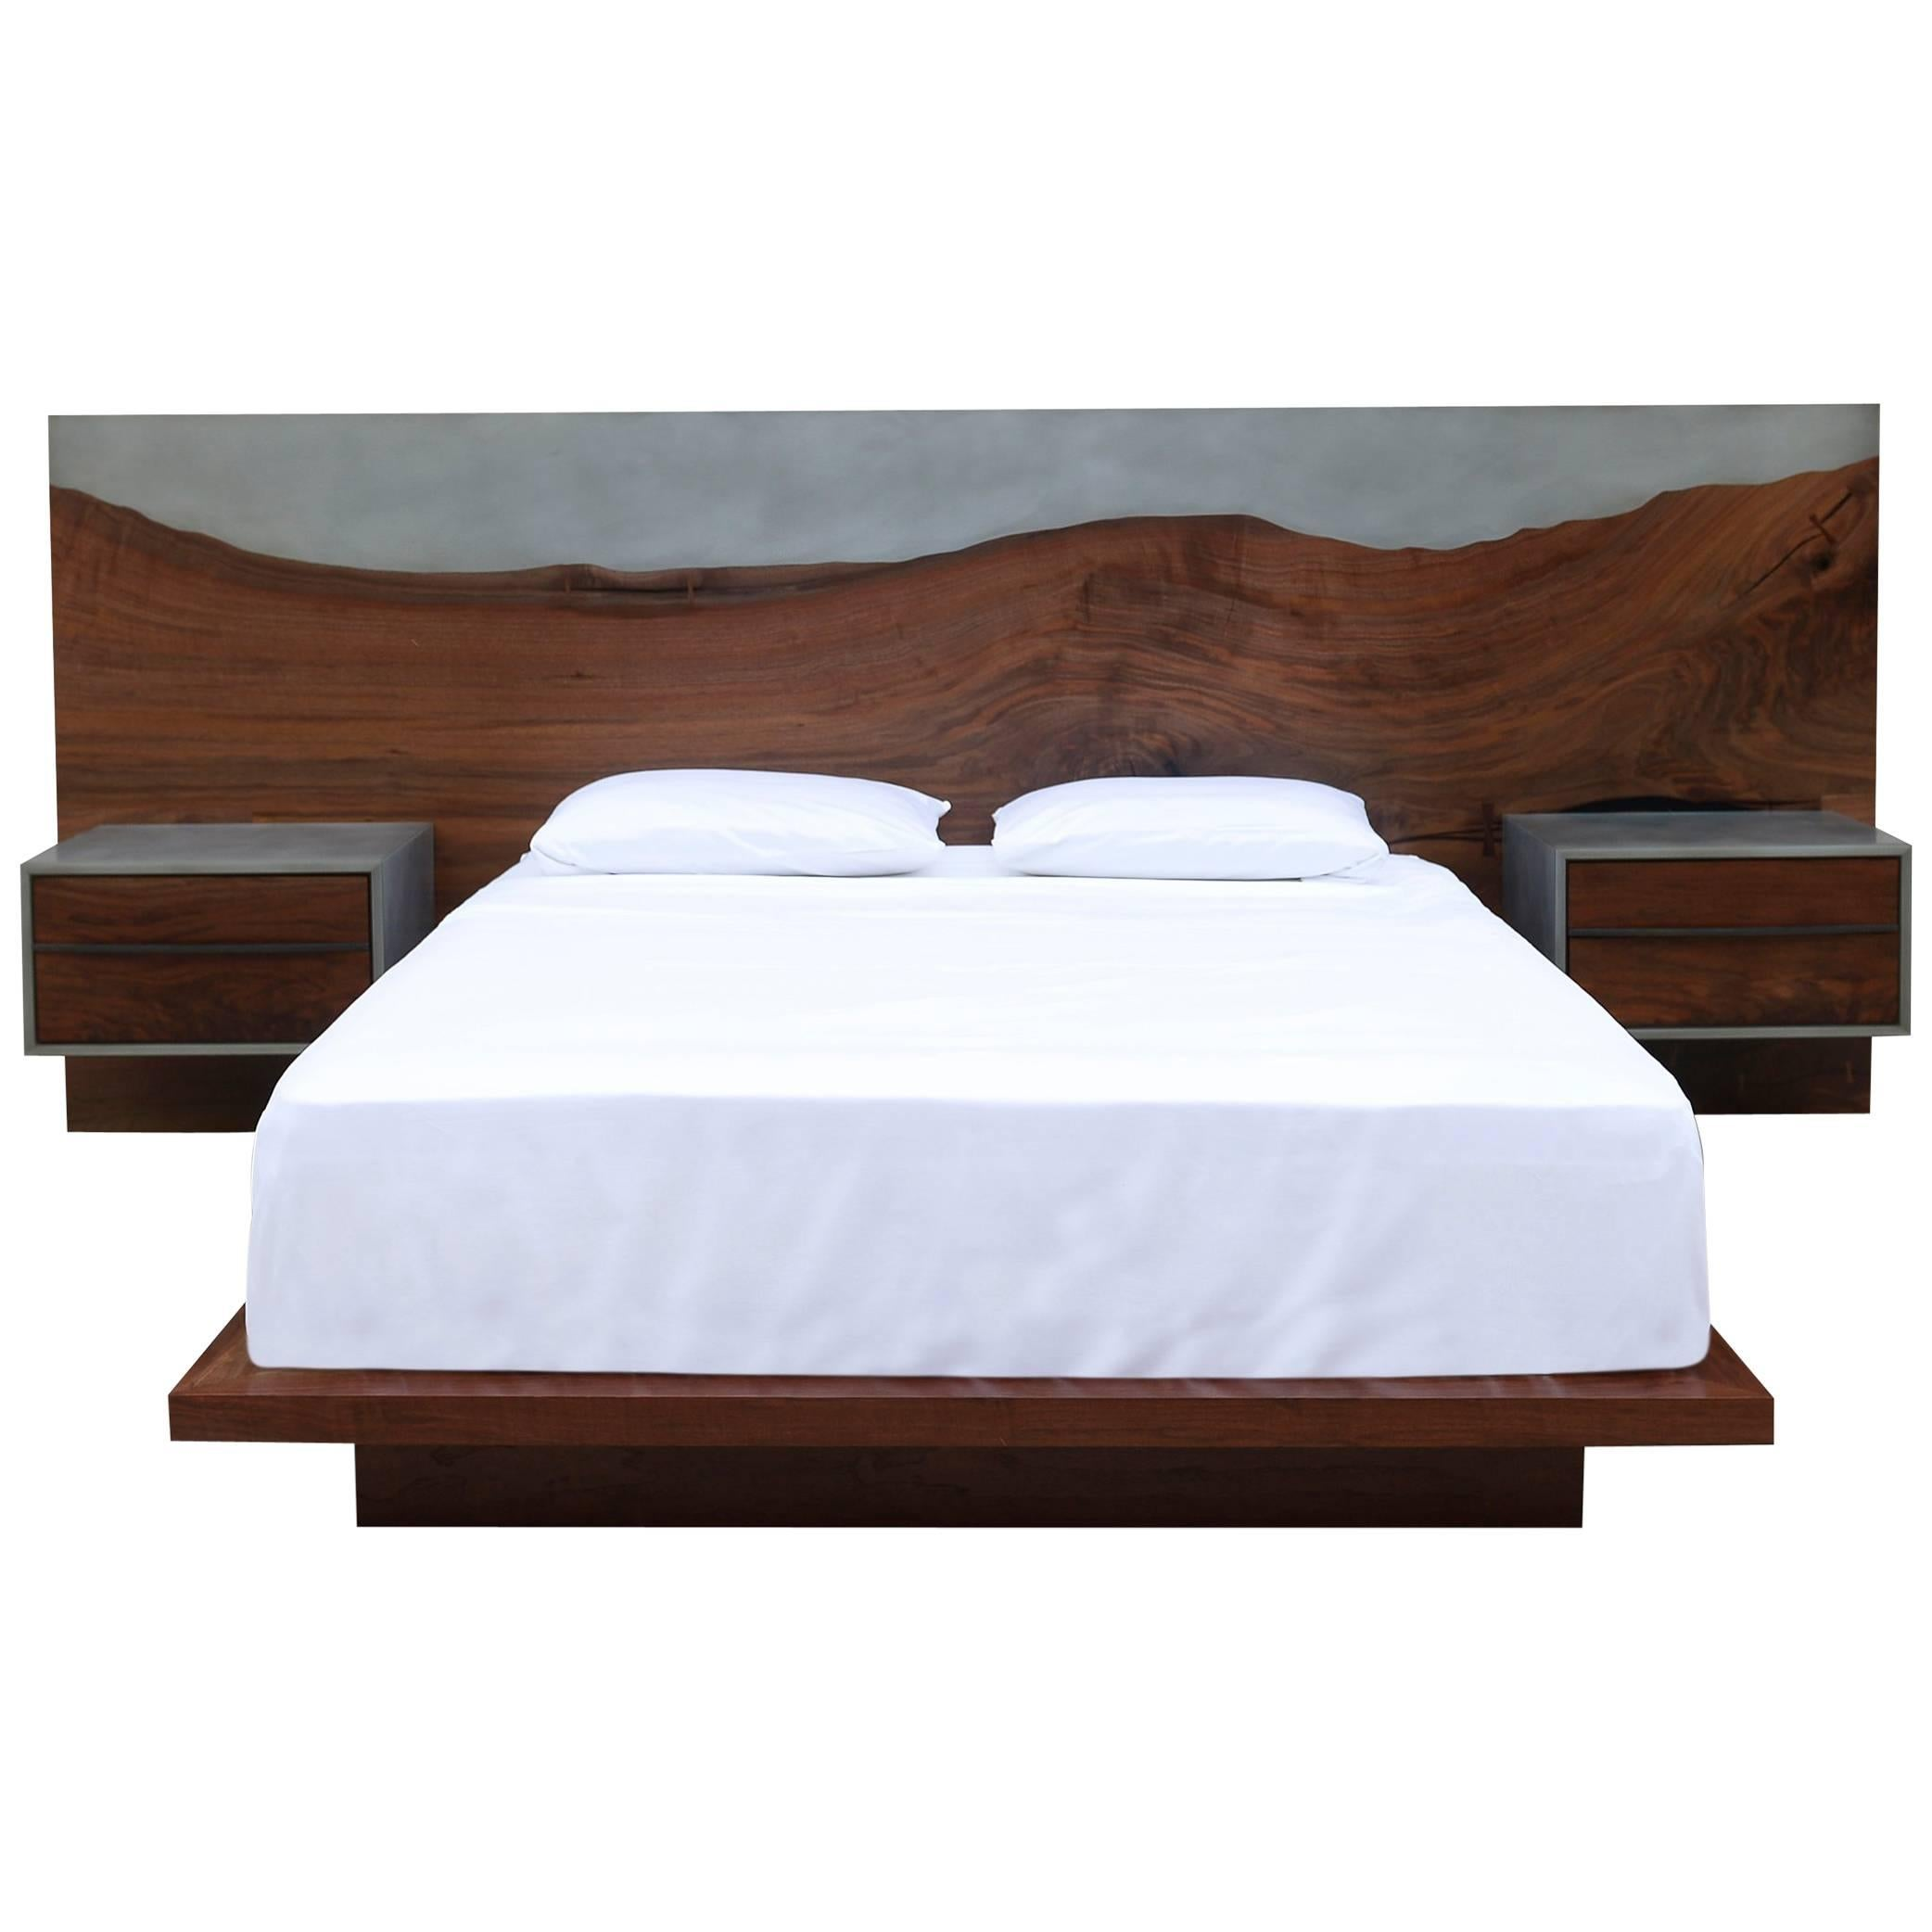 Nola Bed, Customizable Wood, Metal And Resin, Queen Size